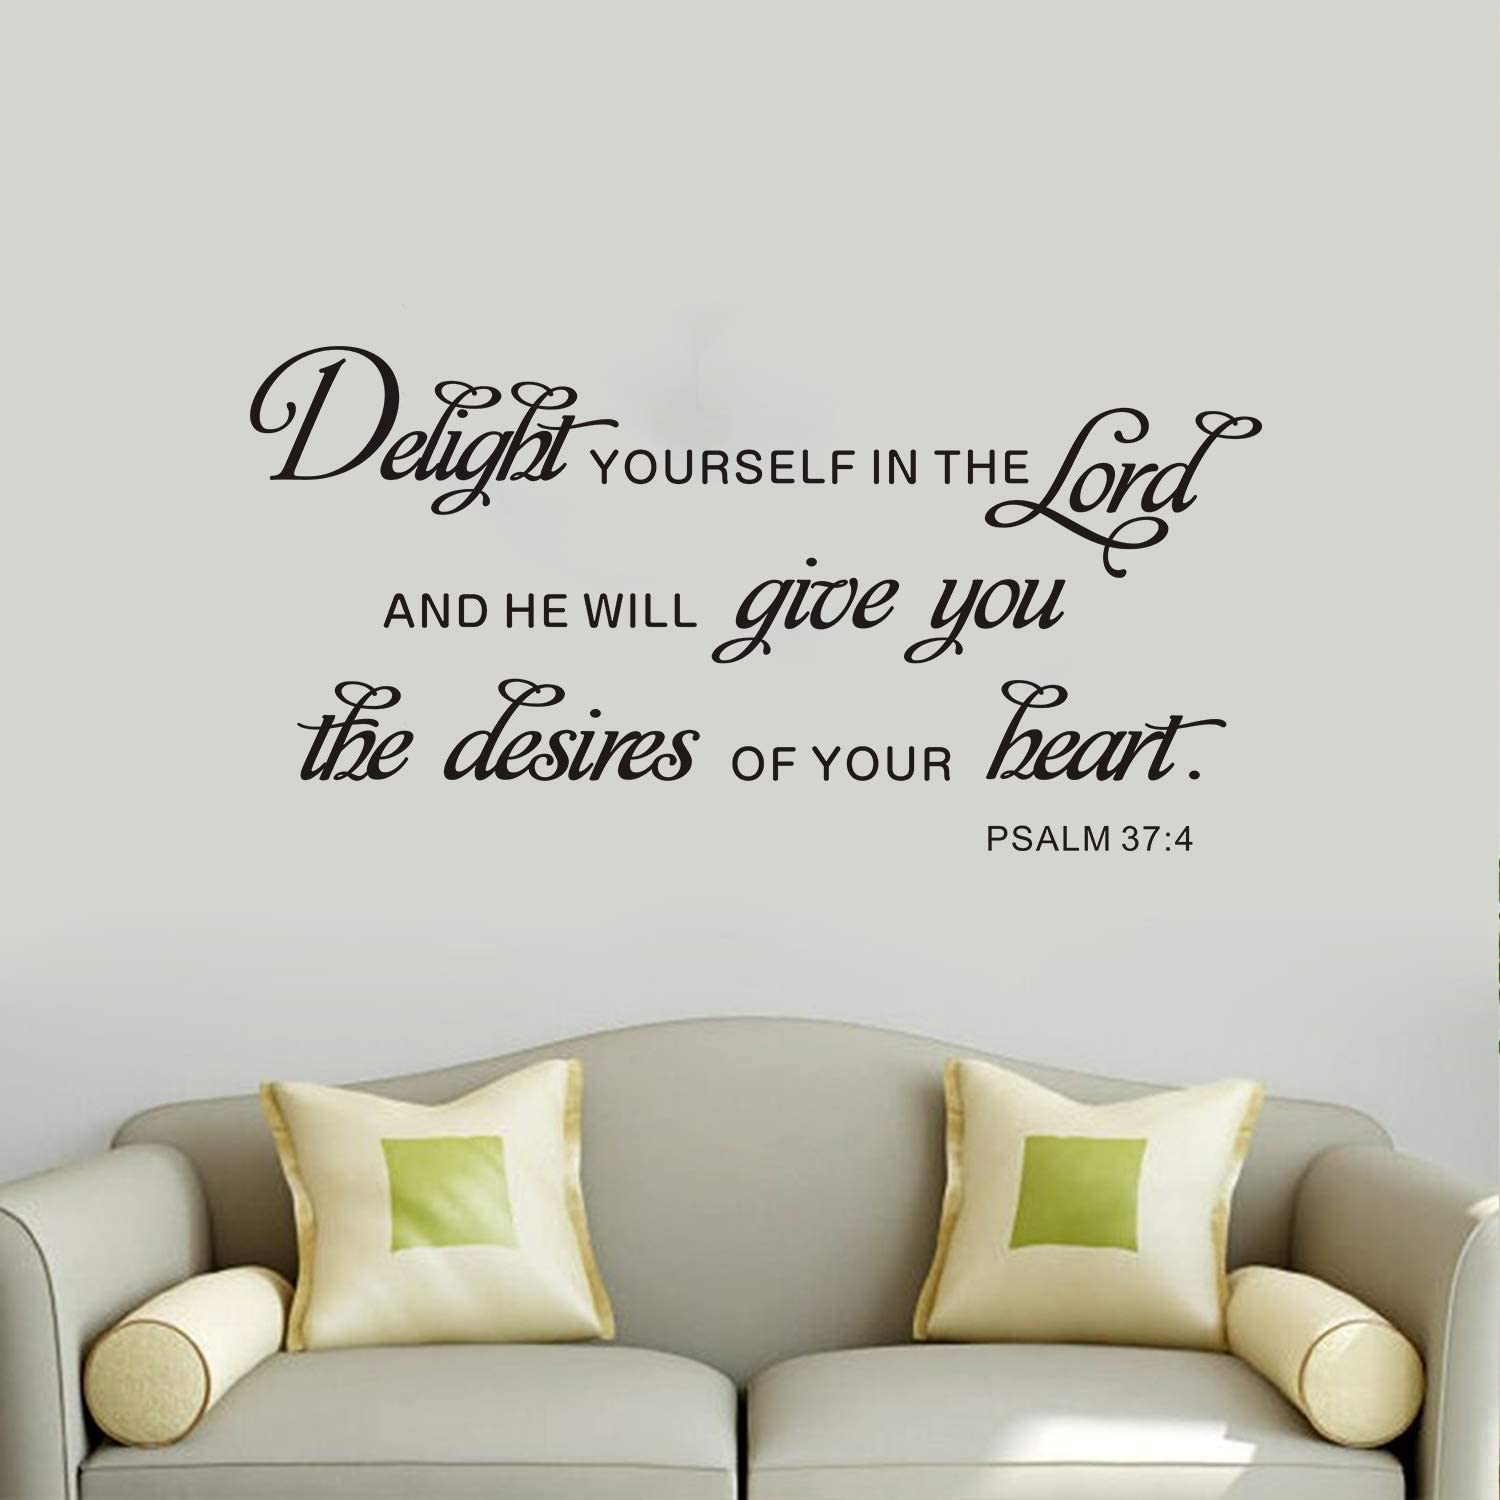 AnFigure Wall Decals for Living Room, Quotes Wall Decal, Bible Verse Biblical Church Vinyl Art Home Decor Stickers Delight Yourself in The Lord and He Will Give You The Desires of Your Heart 22